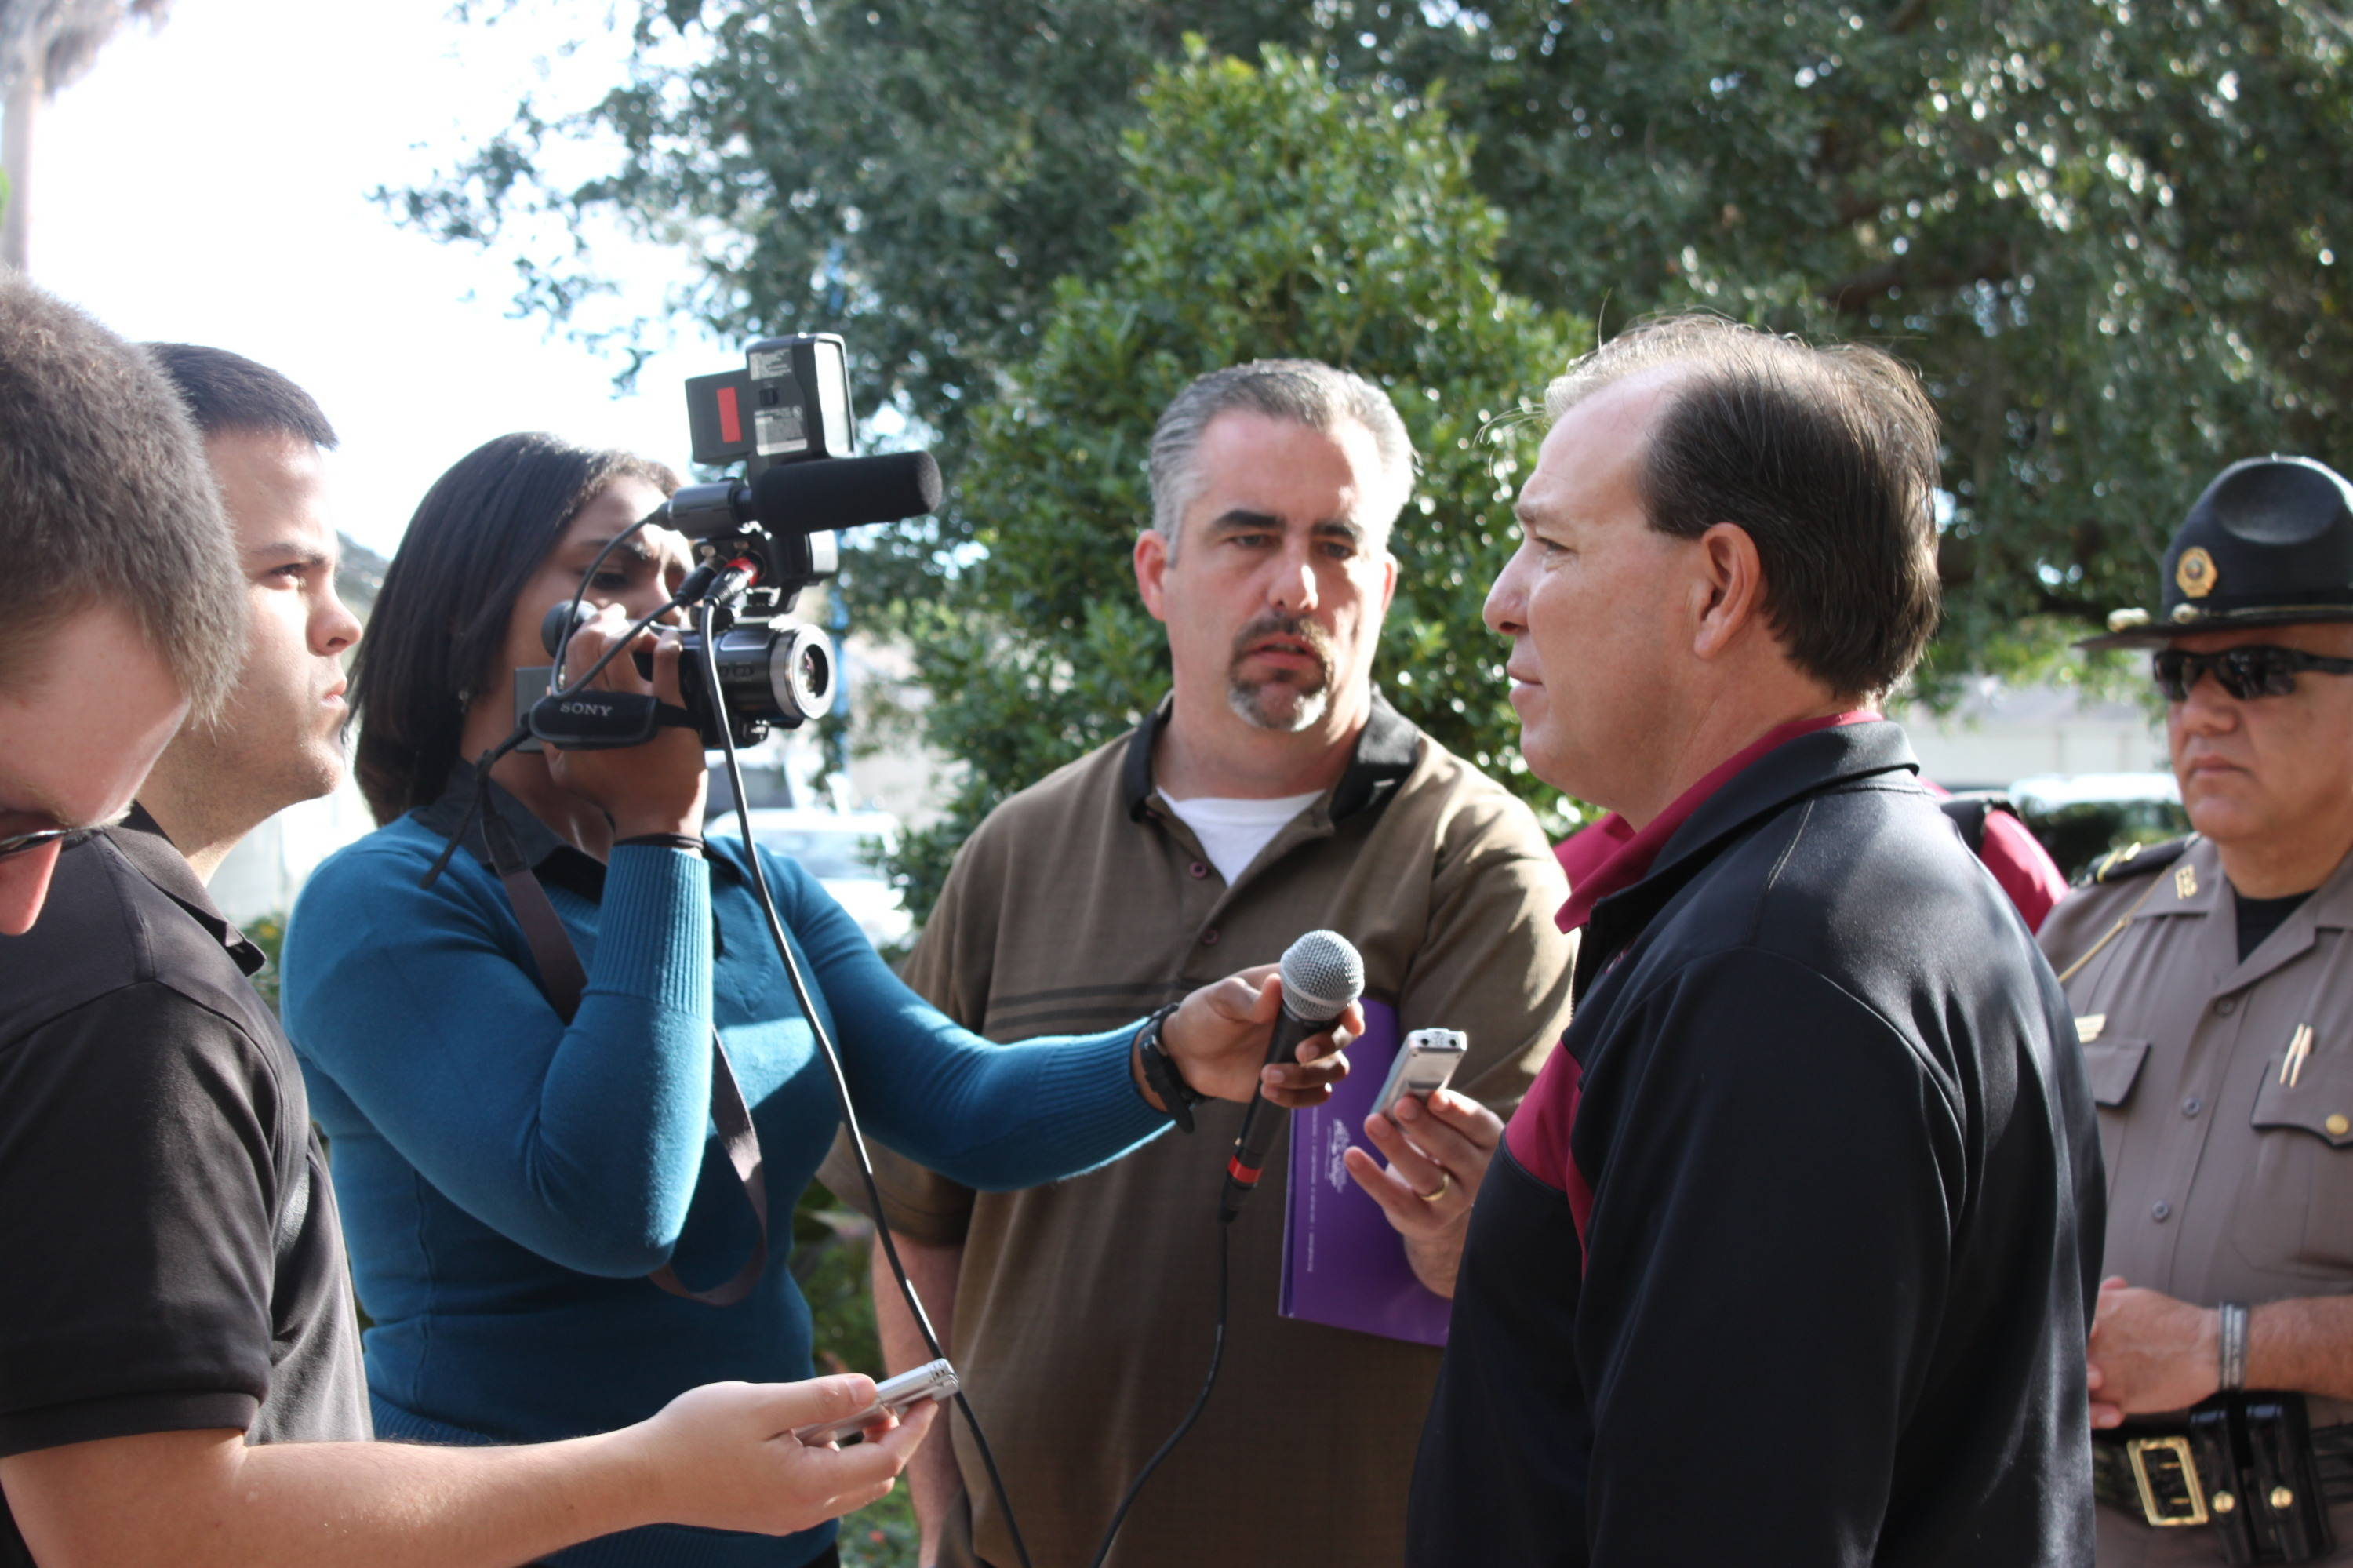 FSU coach Jimbo Fisher entertained questions from the media.